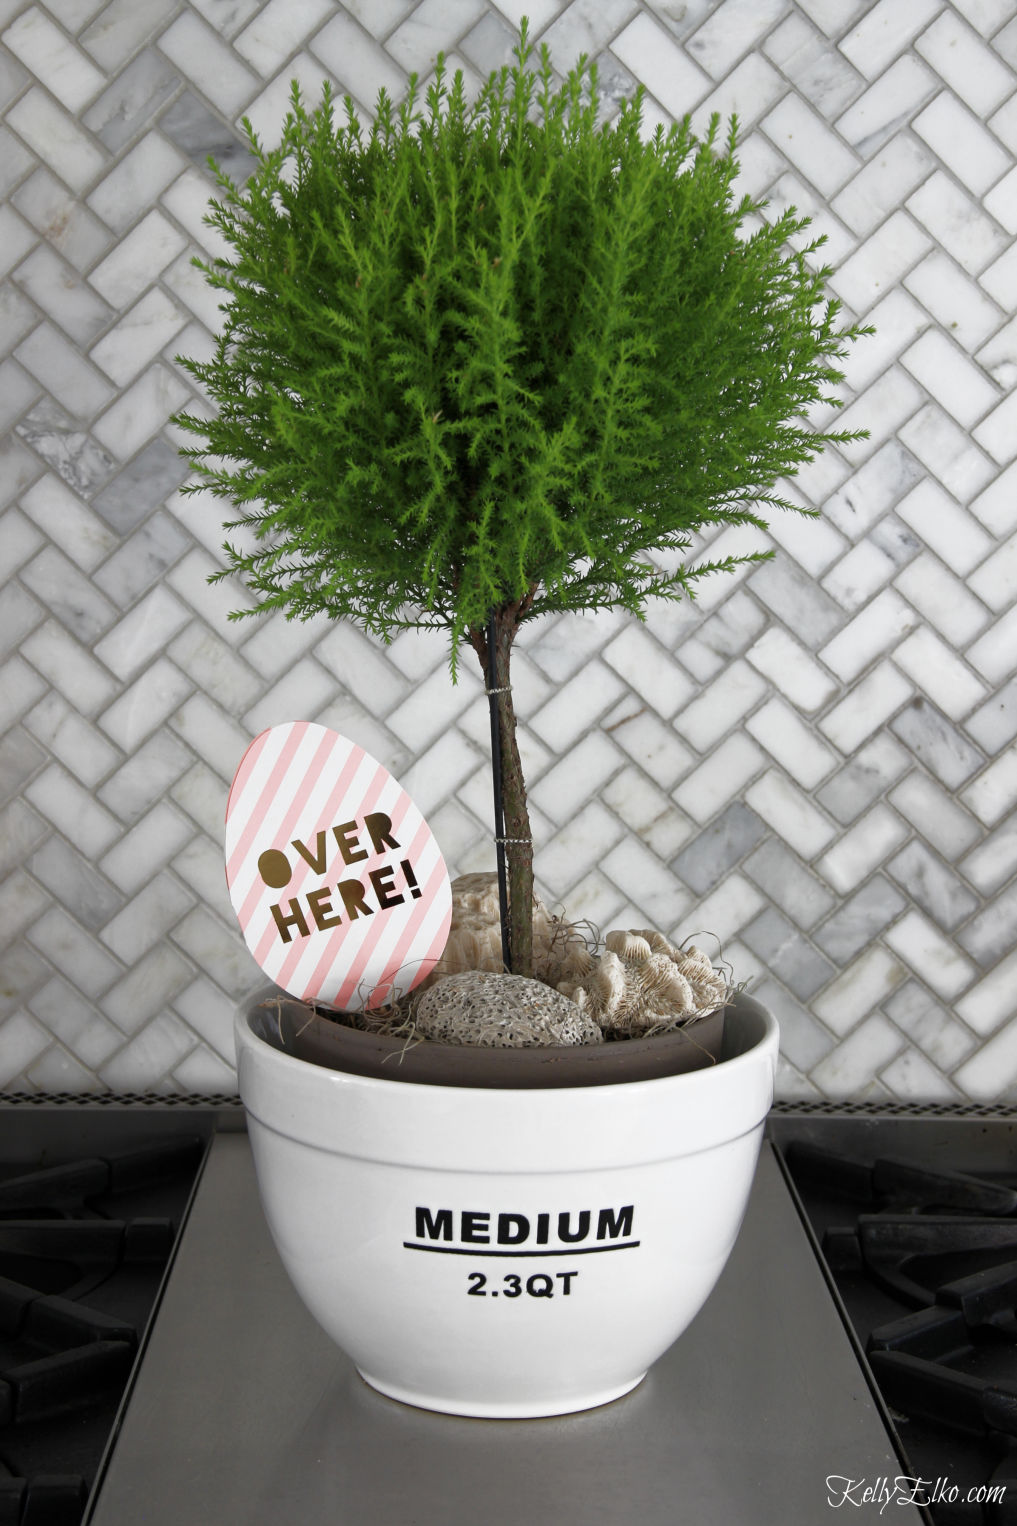 Love this topiary displayed in a kitchen bowl kellyelko.com #plants #indoorplants #plantlady #topiary